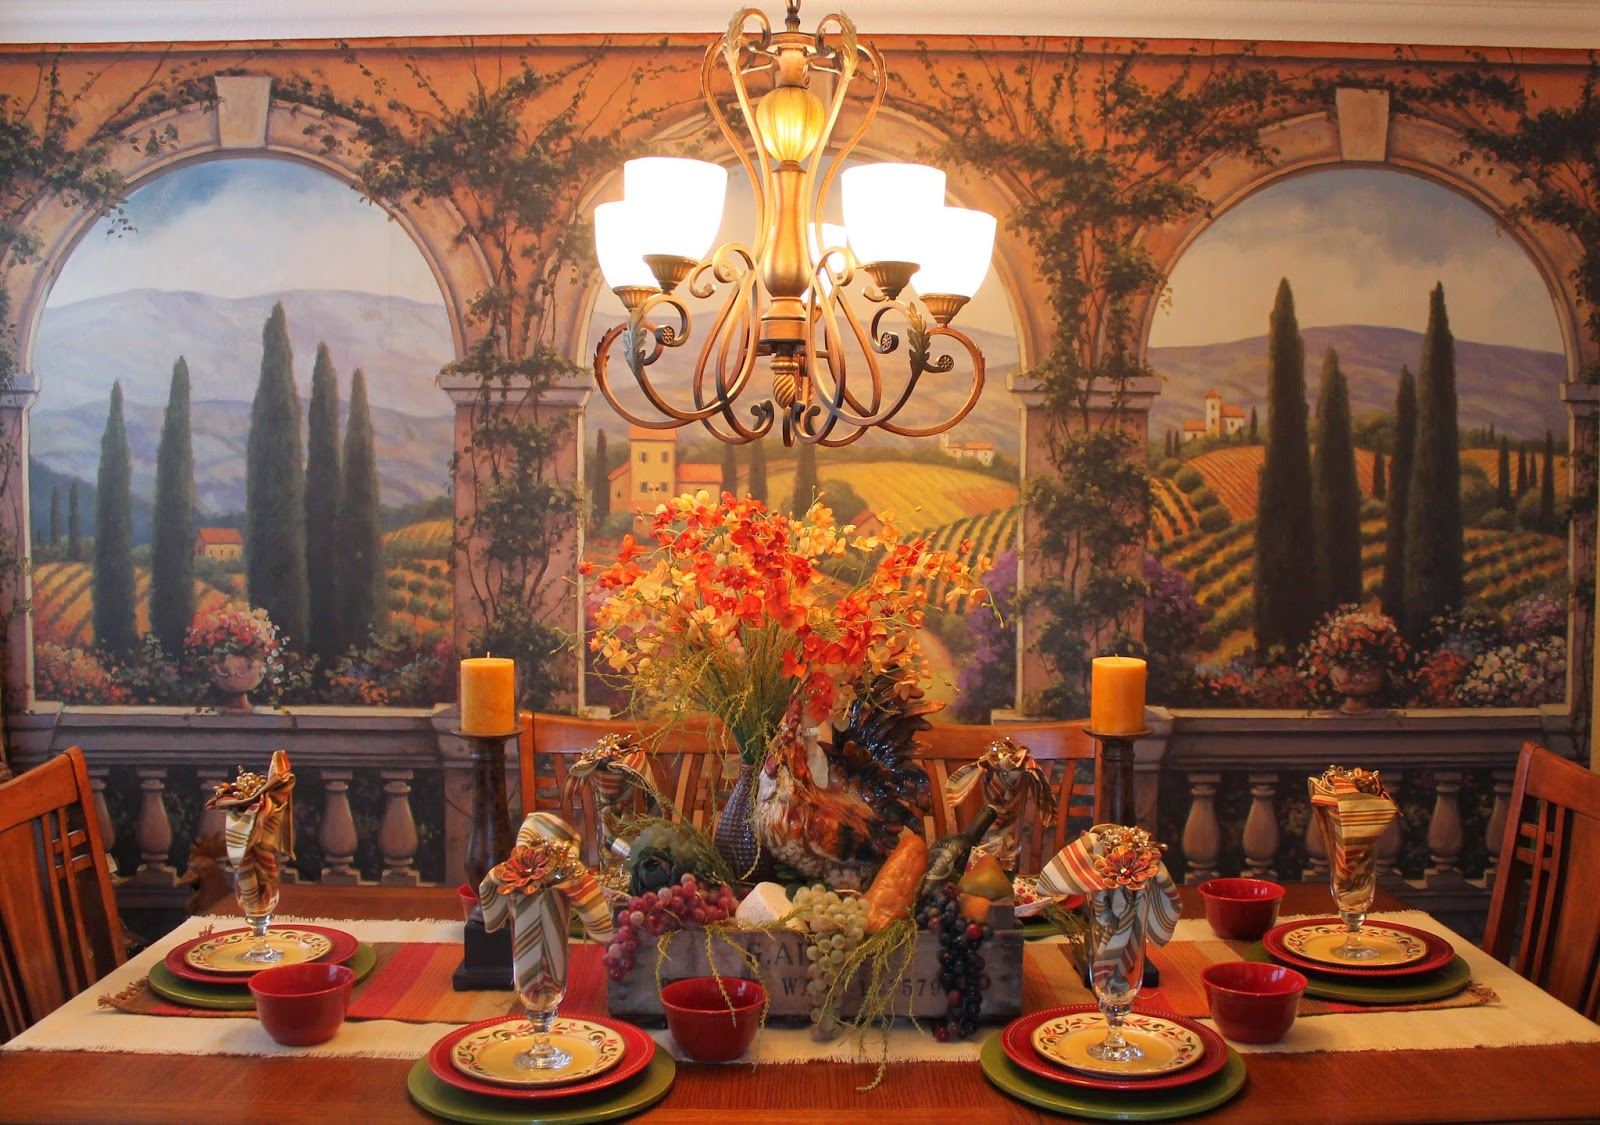 tuscany dining room furniture when furnishing - Tuscany Dining Room Furniture